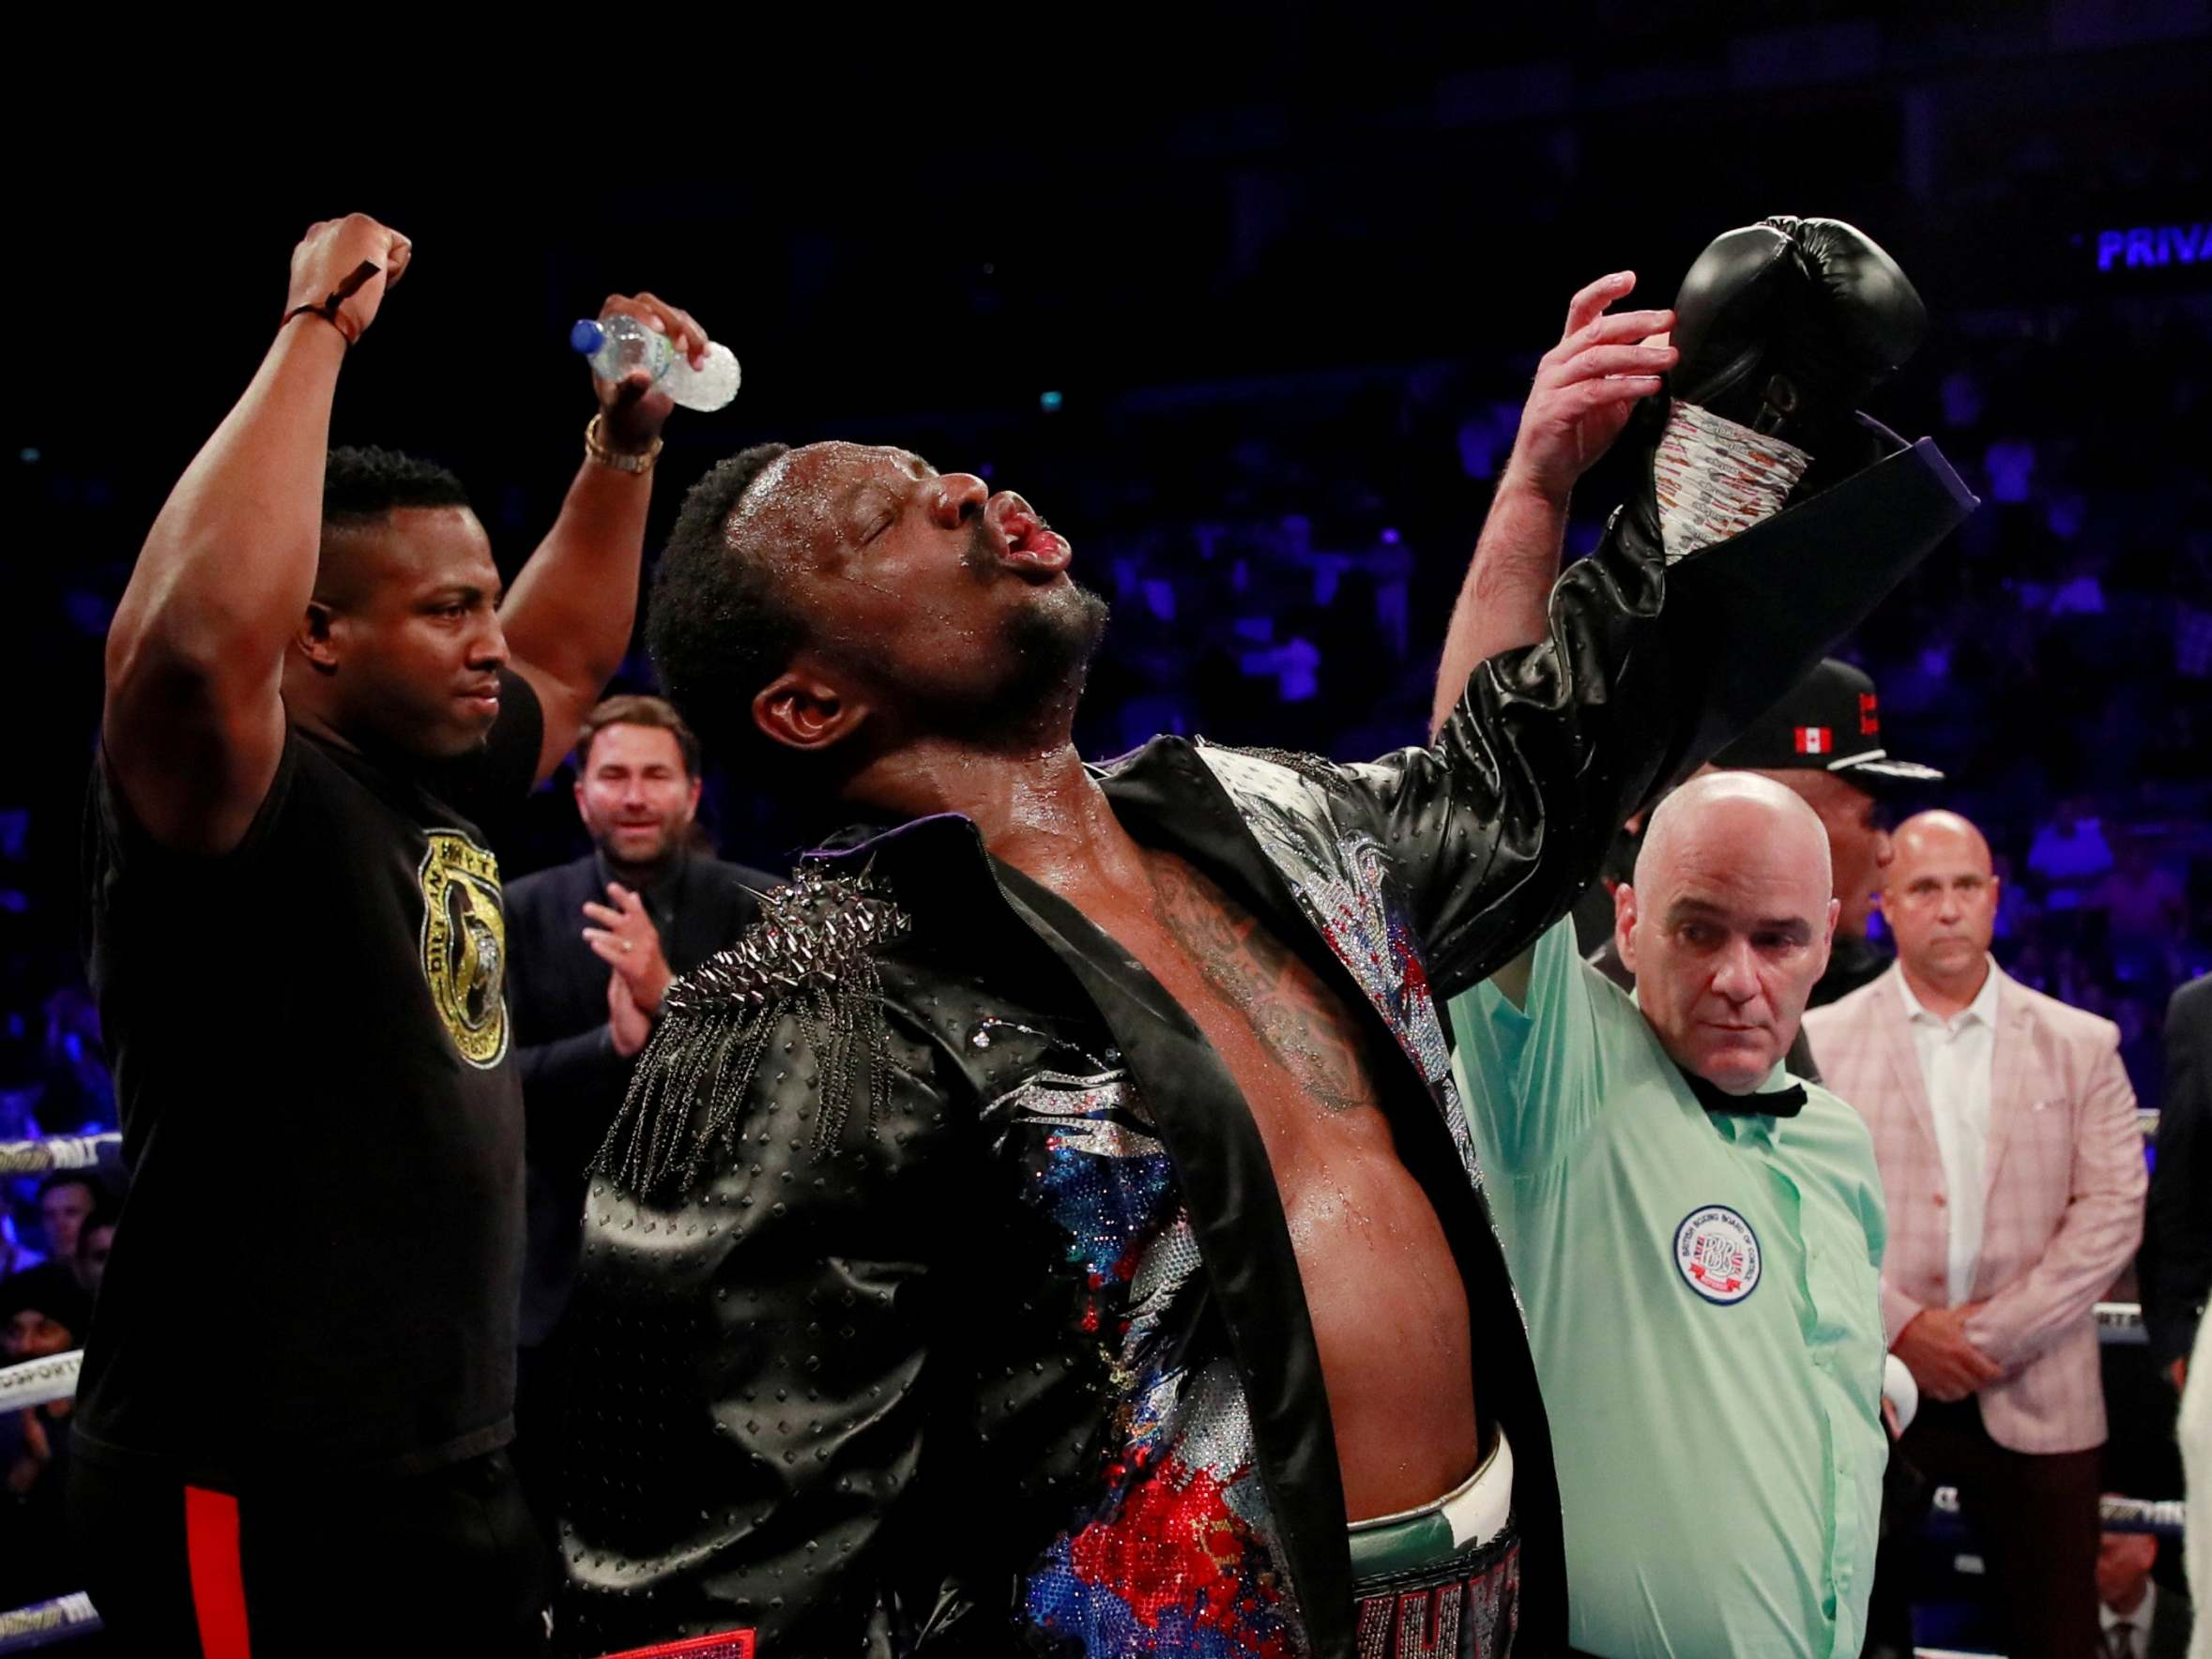 Dillian Whyte and Manny Pacquiao, boxing's great underdog and living miracle, deliver a night to remember